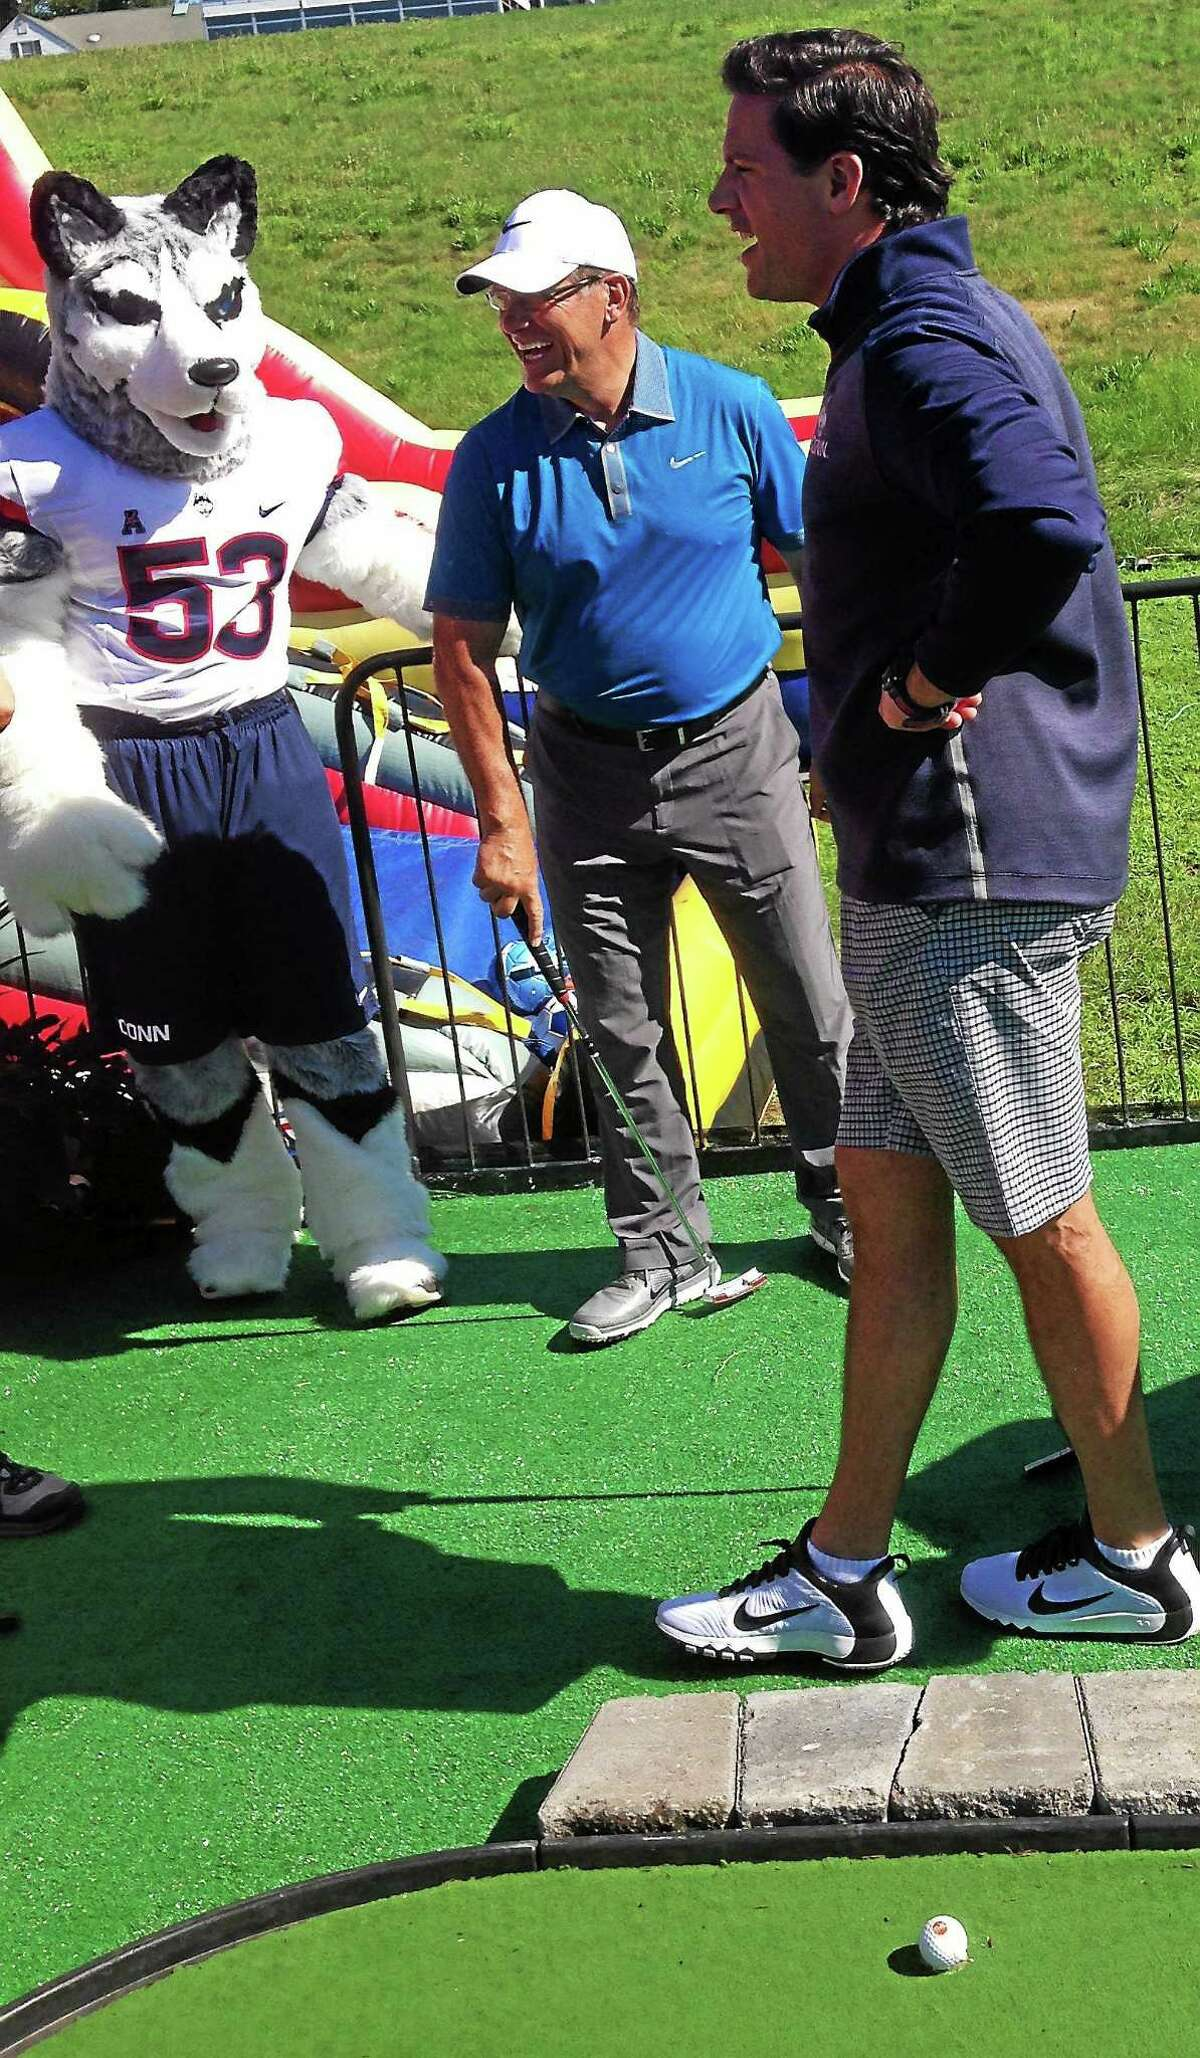 UConn football coach Bob Diaco, right, and women's basketball coach Geno Auriemma participate in the mini-golf tournament on Wednesday.